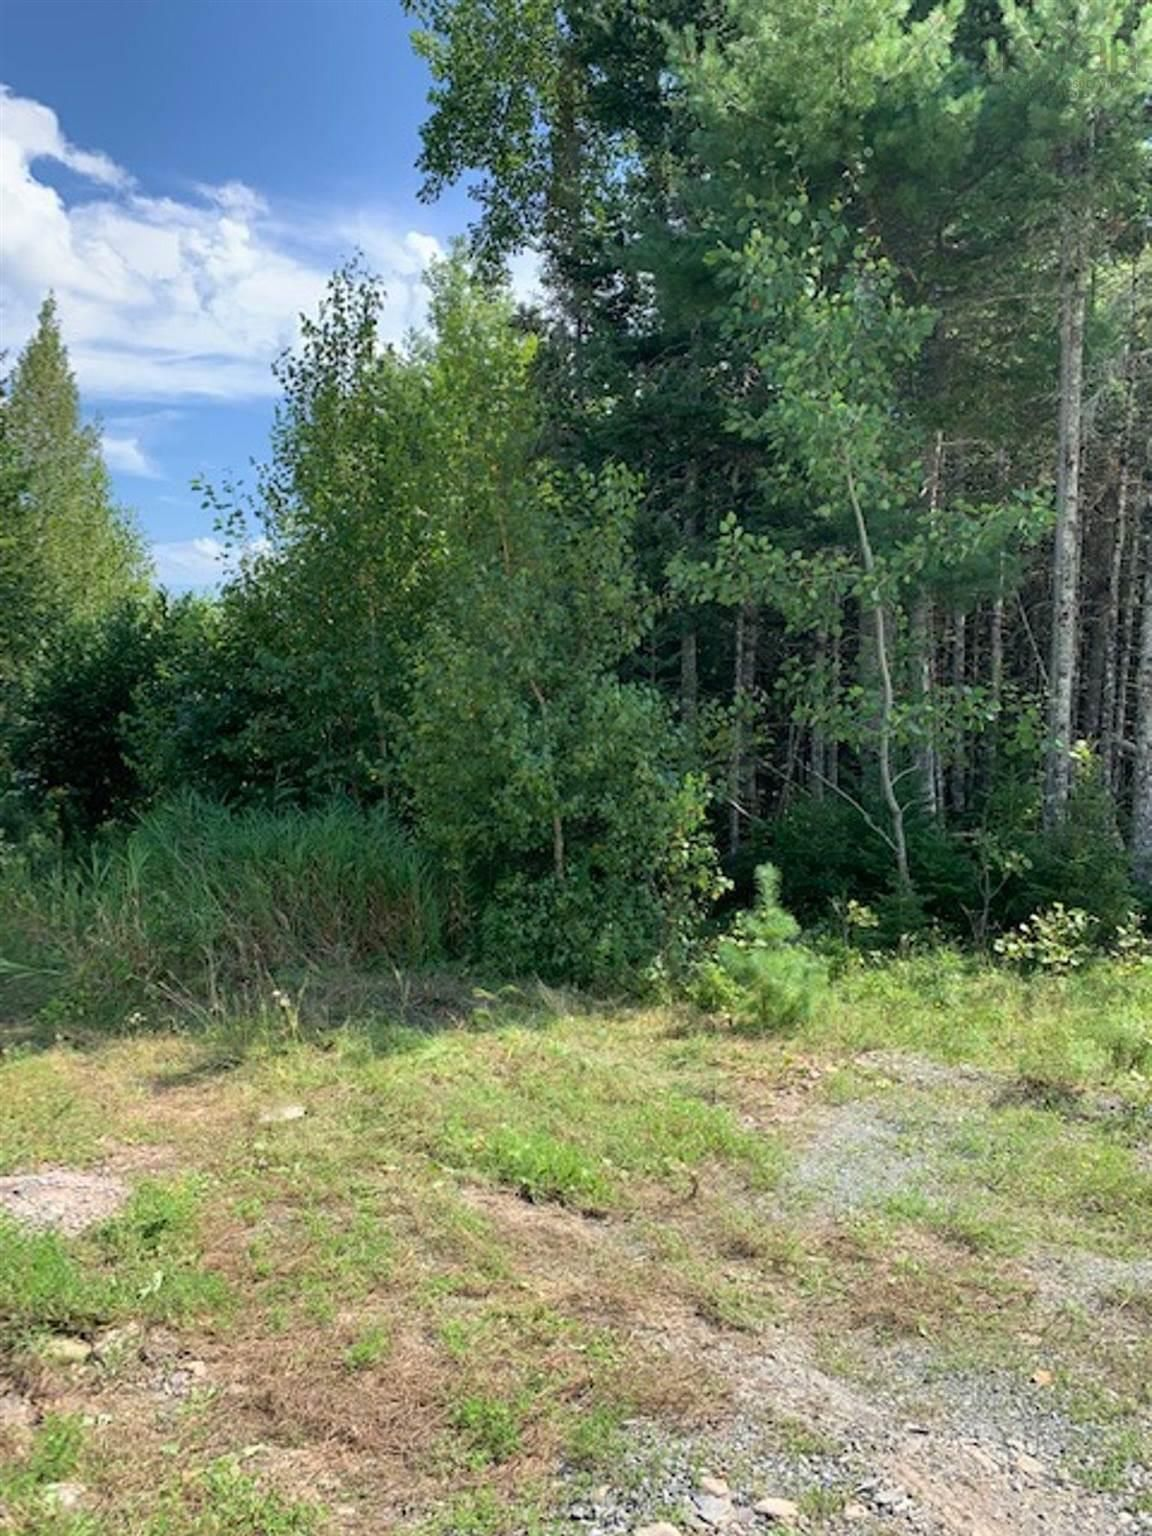 Main Photo: Lot 16 Fairway Avenue in Shubenacadie East: 105-East Hants/Colchester West Vacant Land for sale (Halifax-Dartmouth)  : MLS®# 202122117